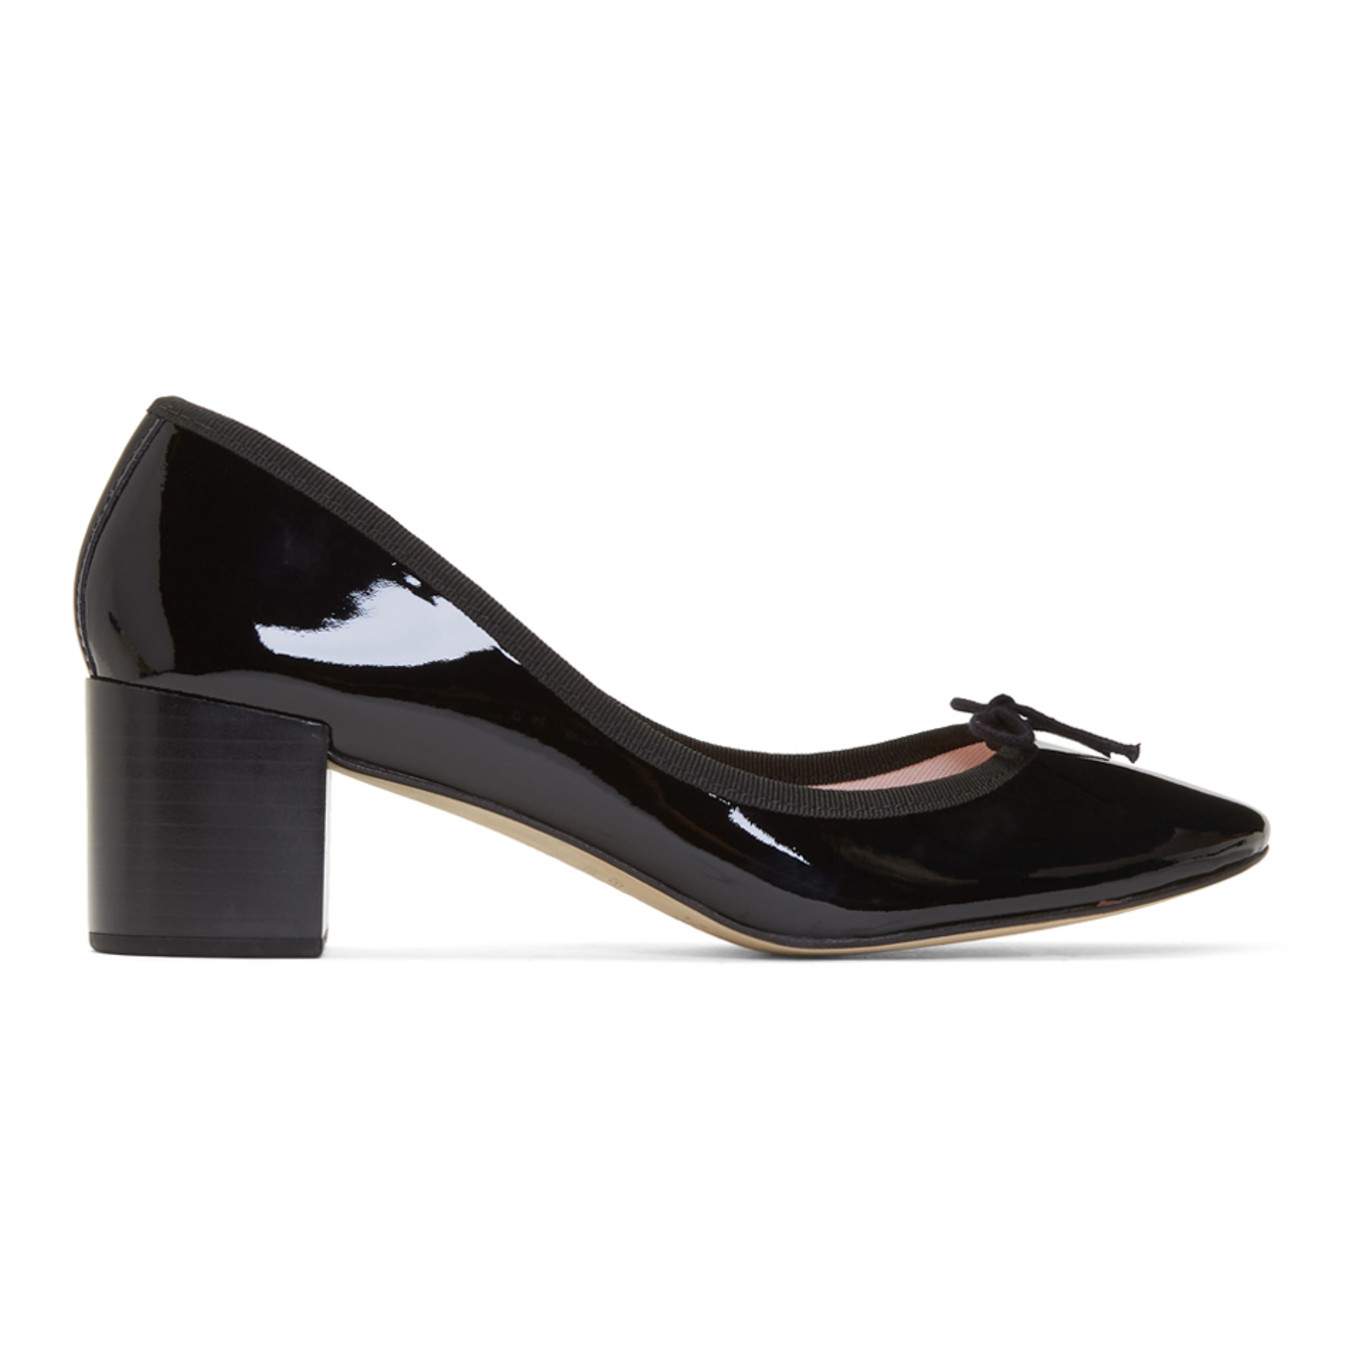 Black Patent Farah Heels by Repetto